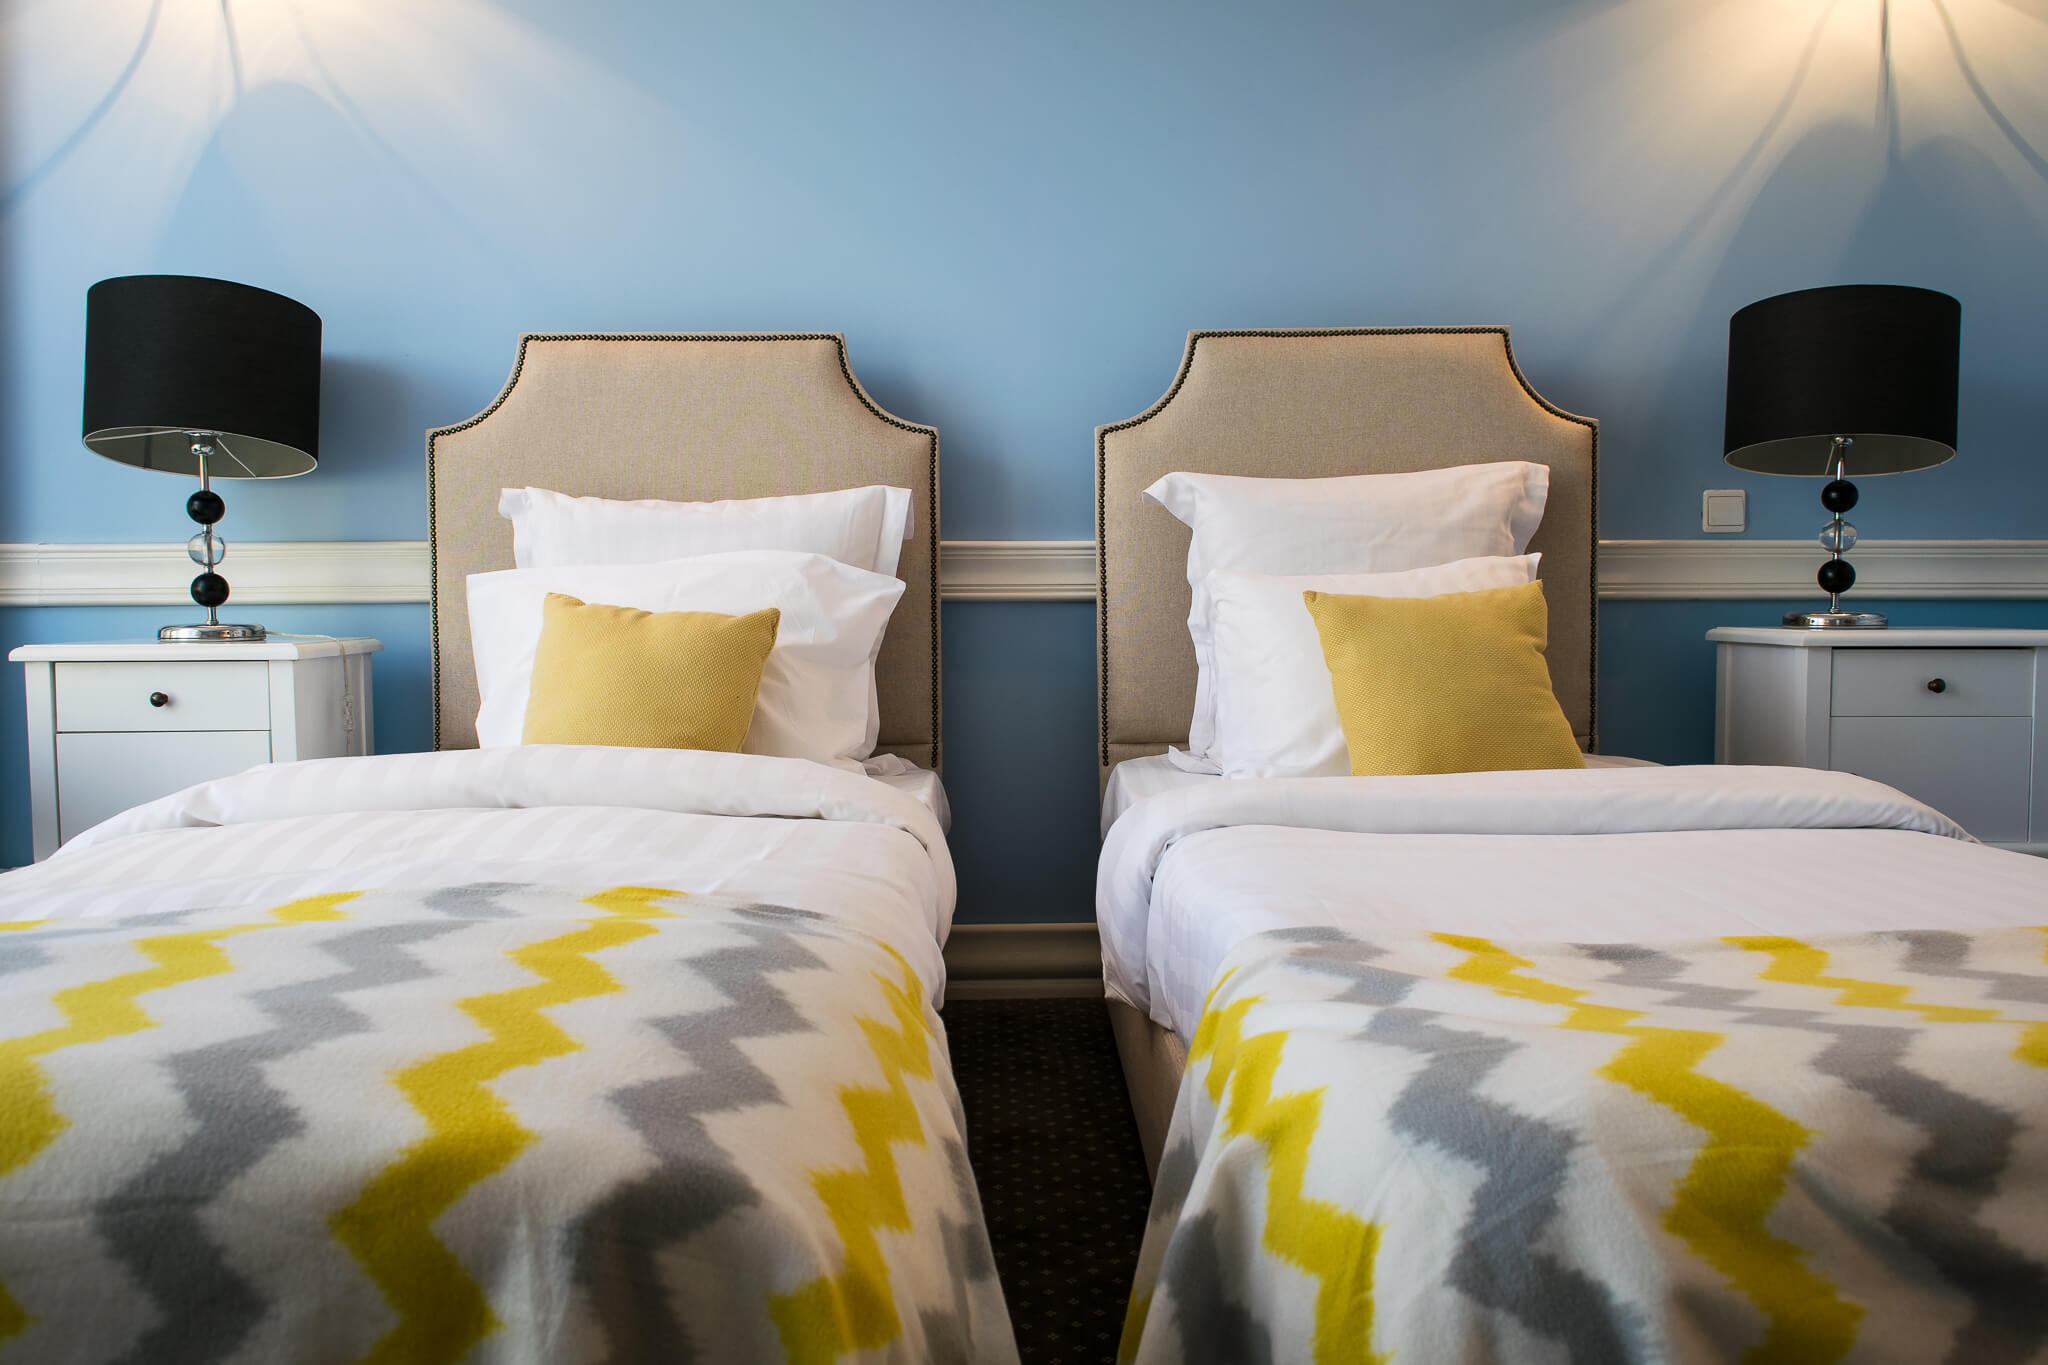 Twin Sharing Room - For 2 people